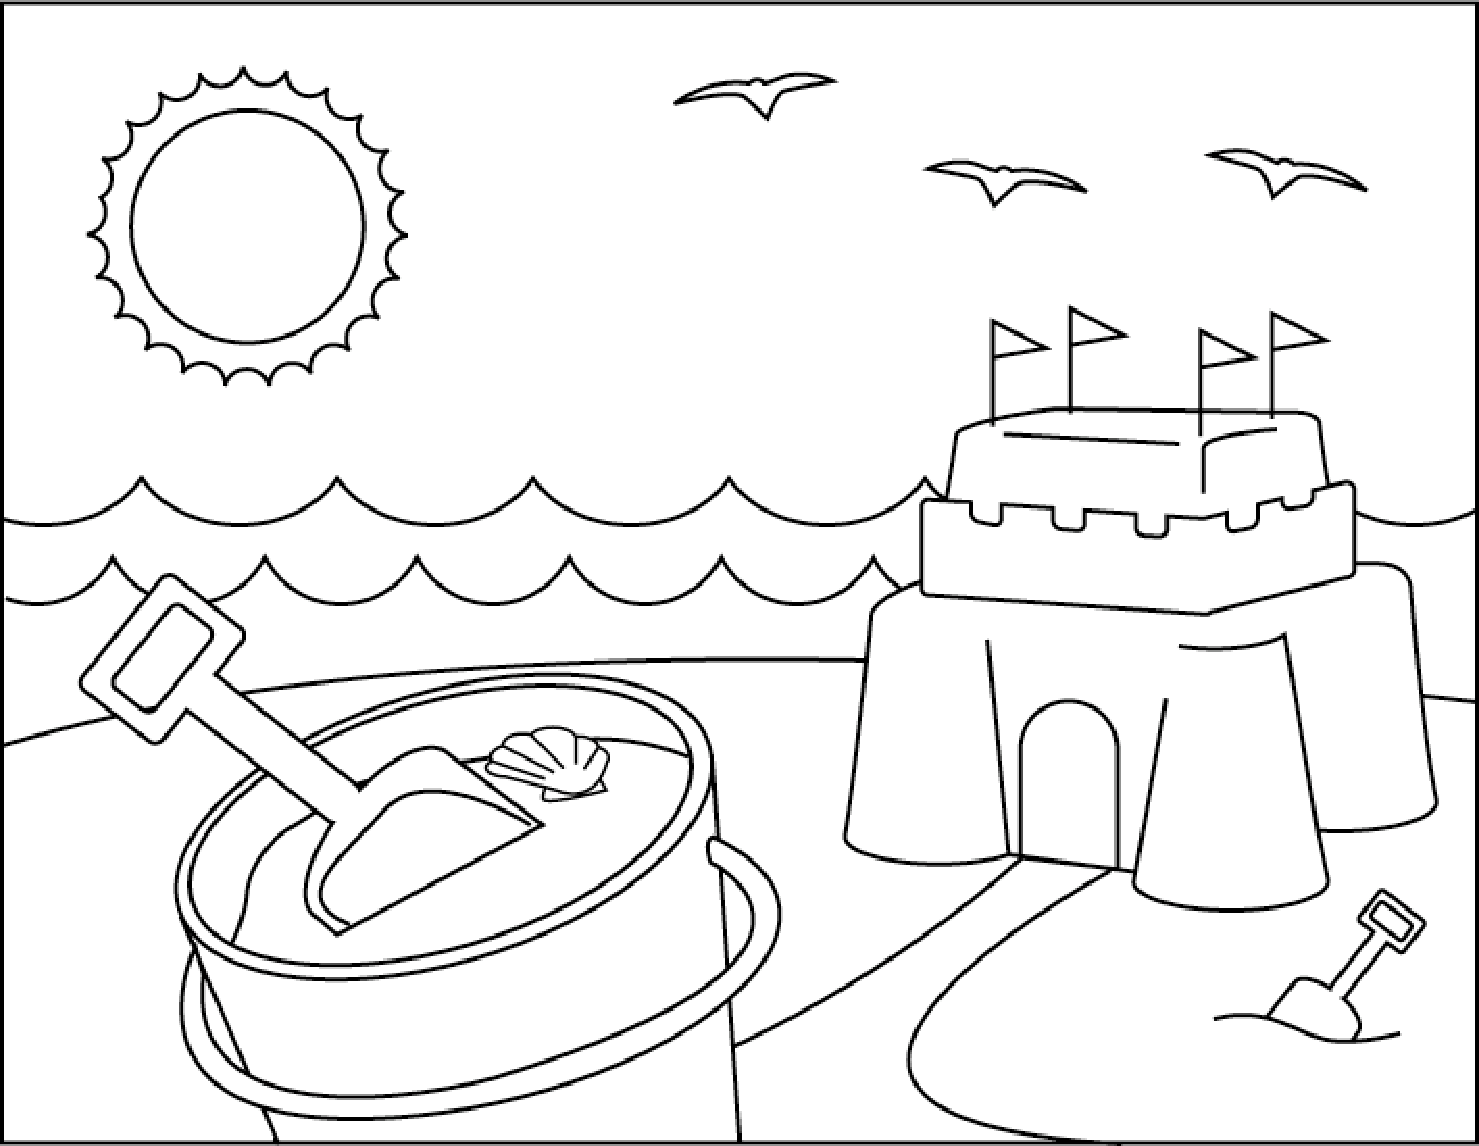 Sand Castle On Beach Summer Coloring Pages For Kids Dr5 Printable Summer Coloring Pages For Beach Coloring Pages Summer Coloring Sheets Cool Coloring Pages [ 1146 x 1479 Pixel ]